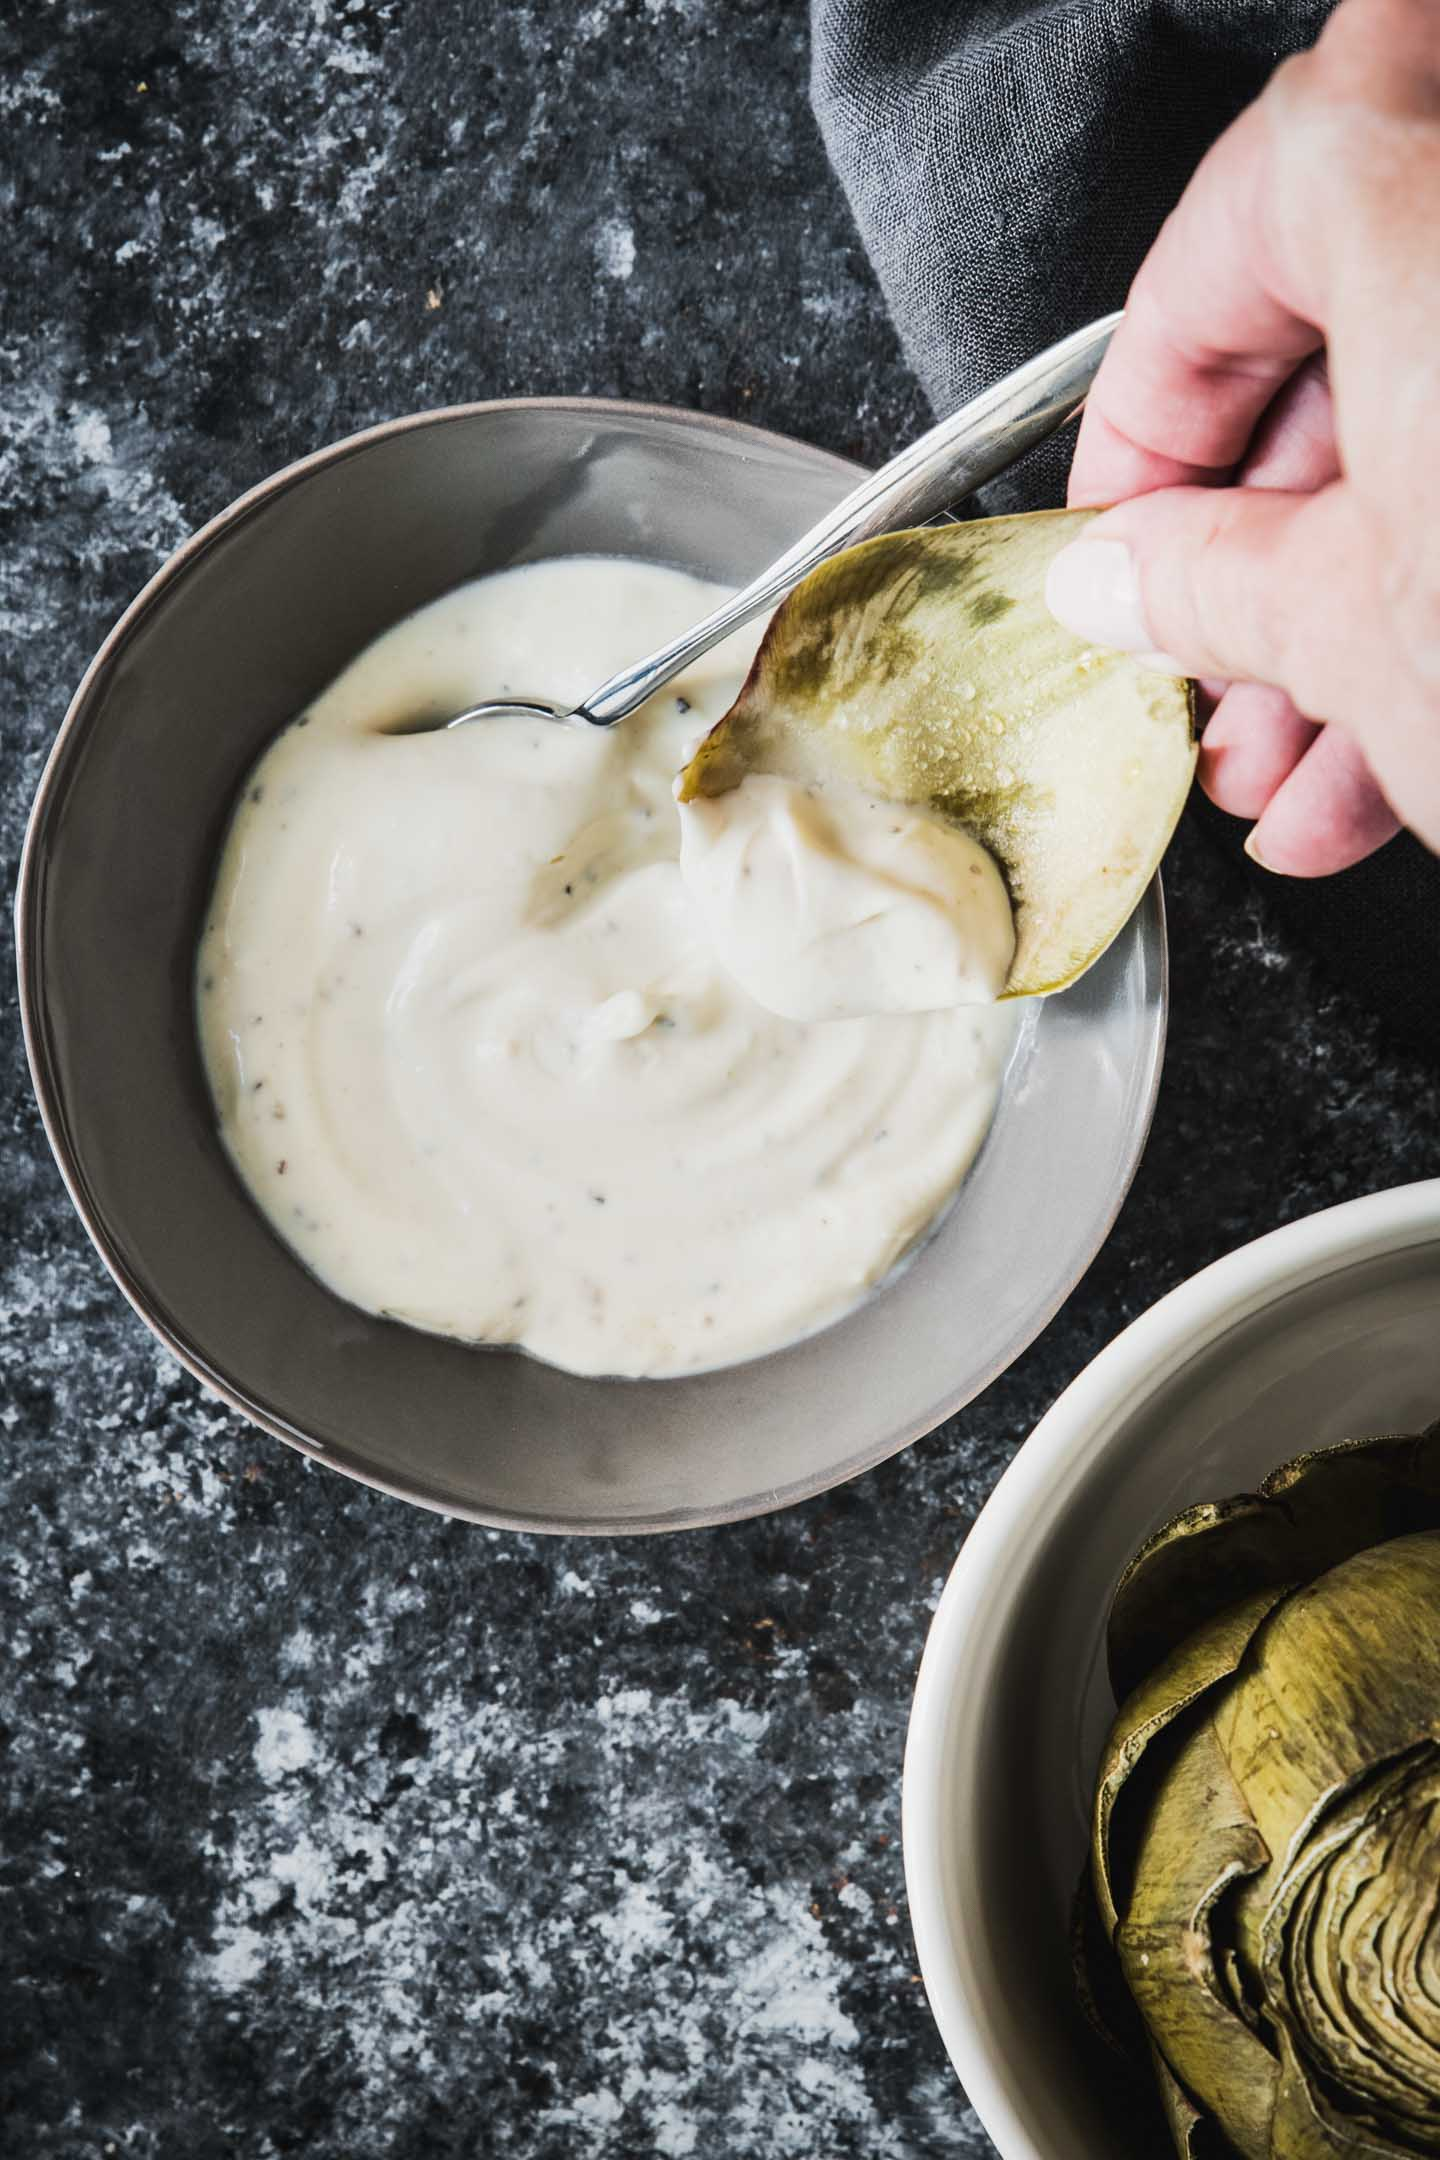 Artichoke leaf being dipped in sauce